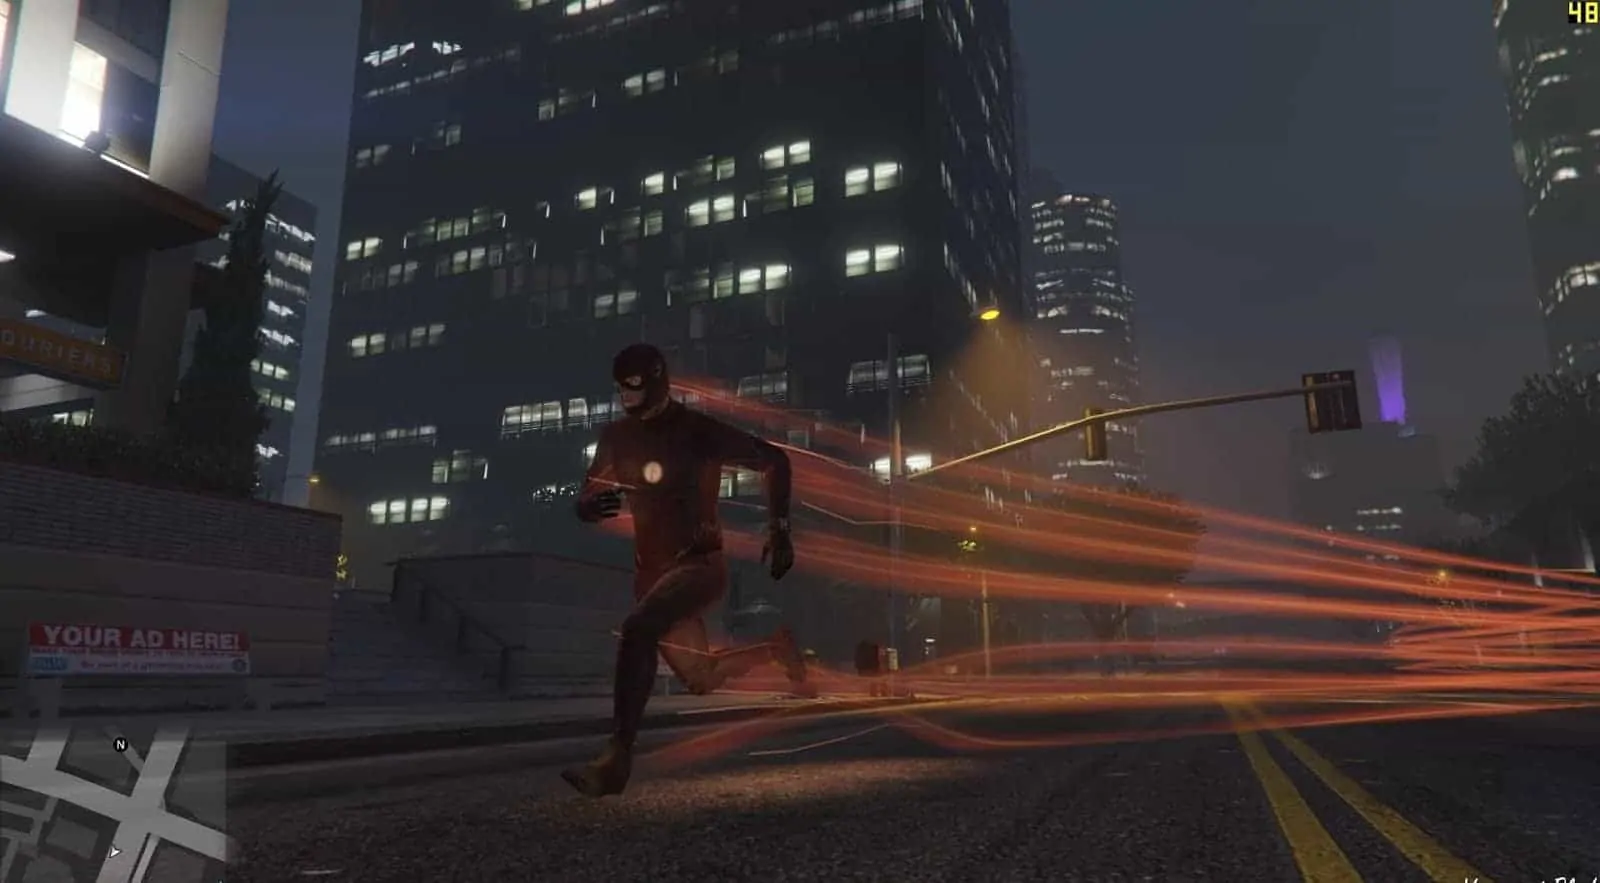 Top 10 Grand Theft Auto 5 Mods To Give You Superpowers - GTA BOOM